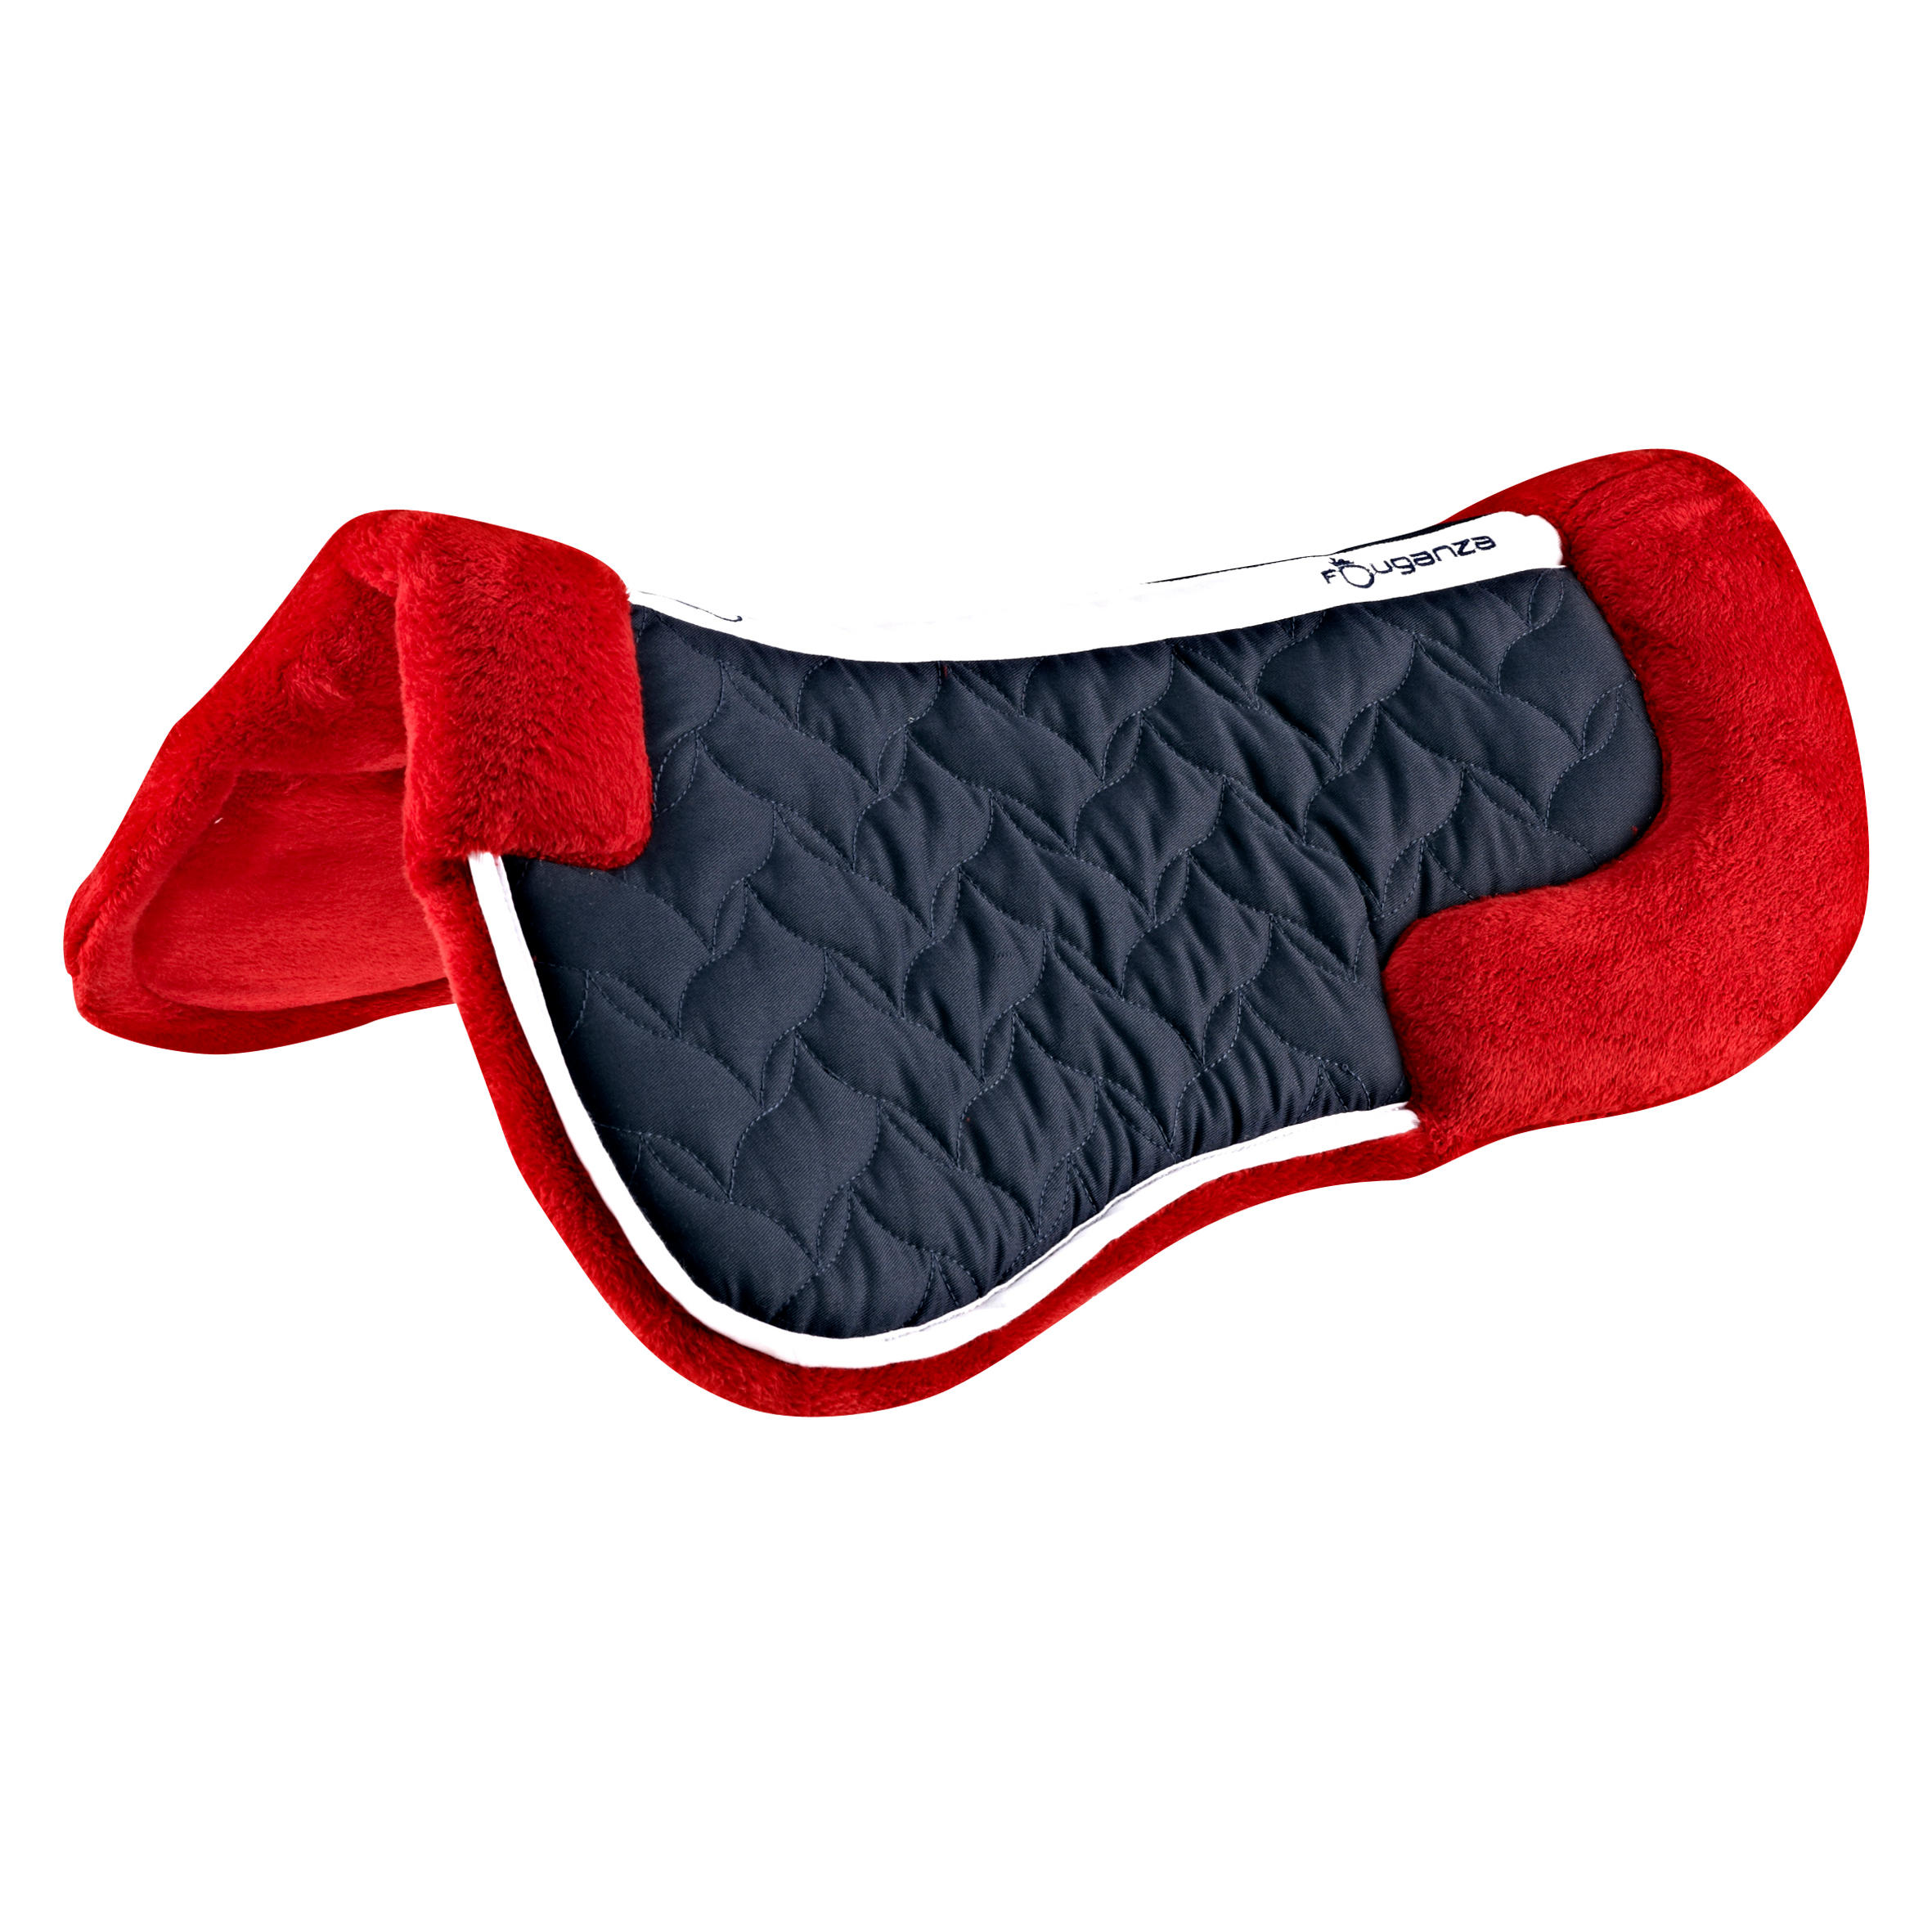 Lena Fleece Horse Riding Foam Saddle Pad For Horse And Pony - Red